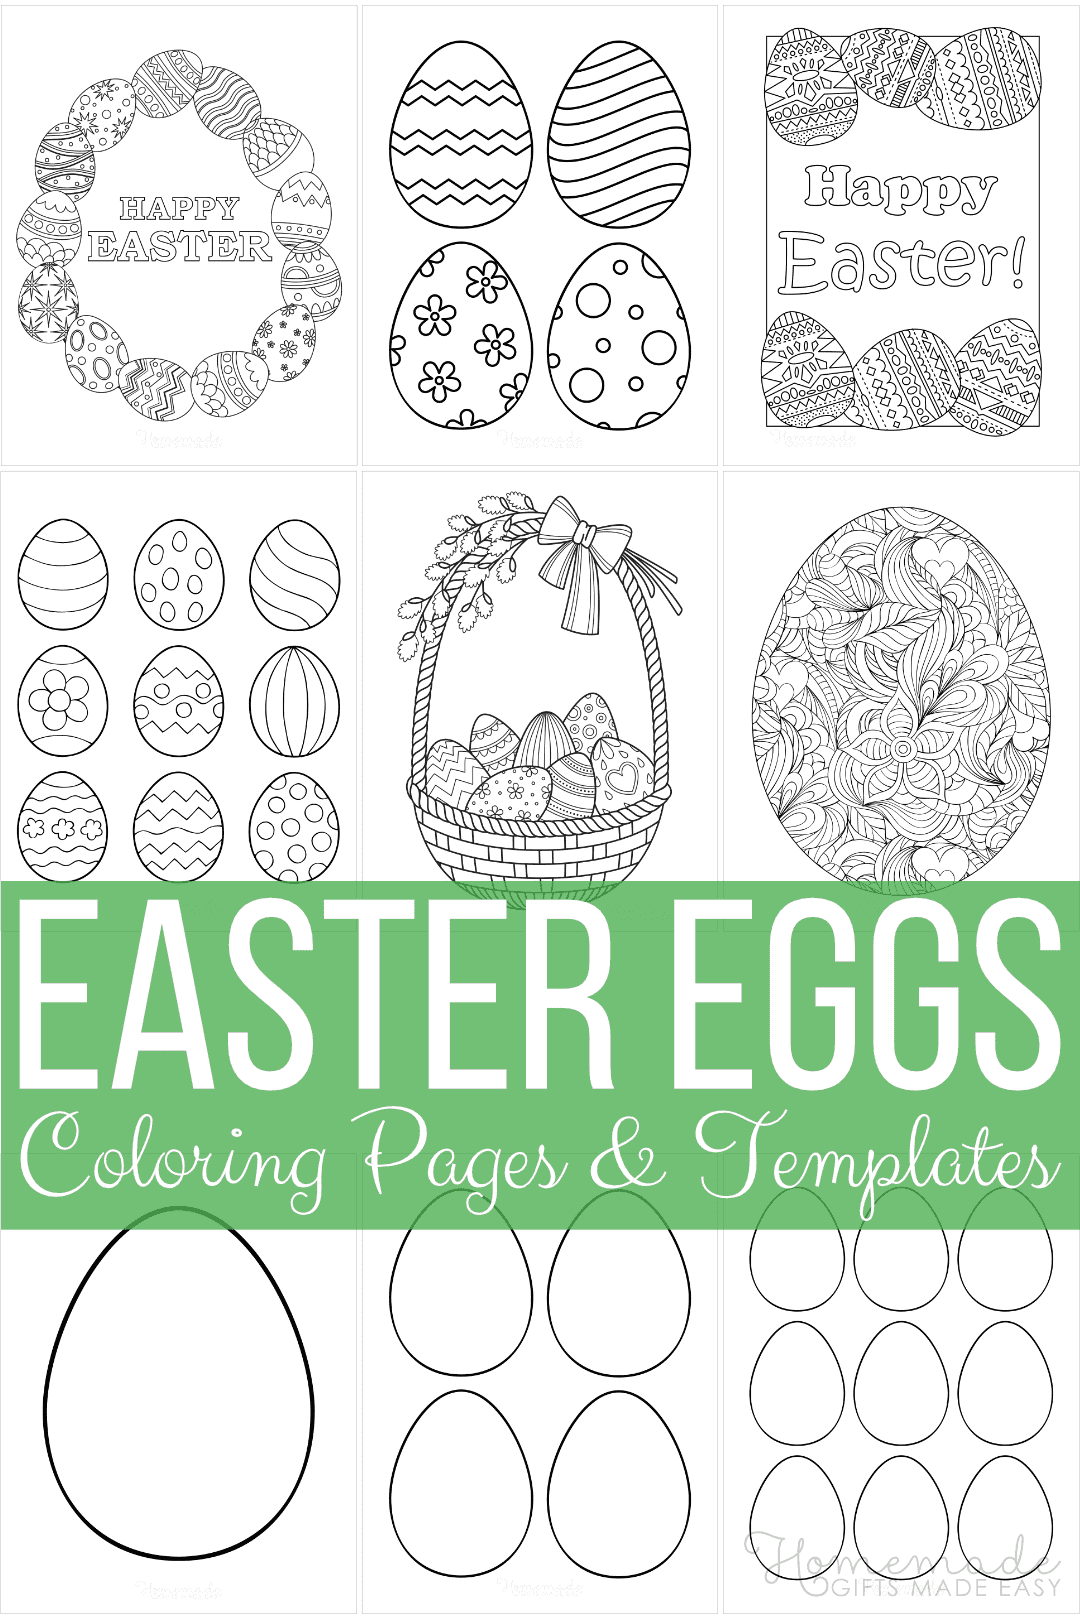 66 free printable Easter egg coloring pages and templates